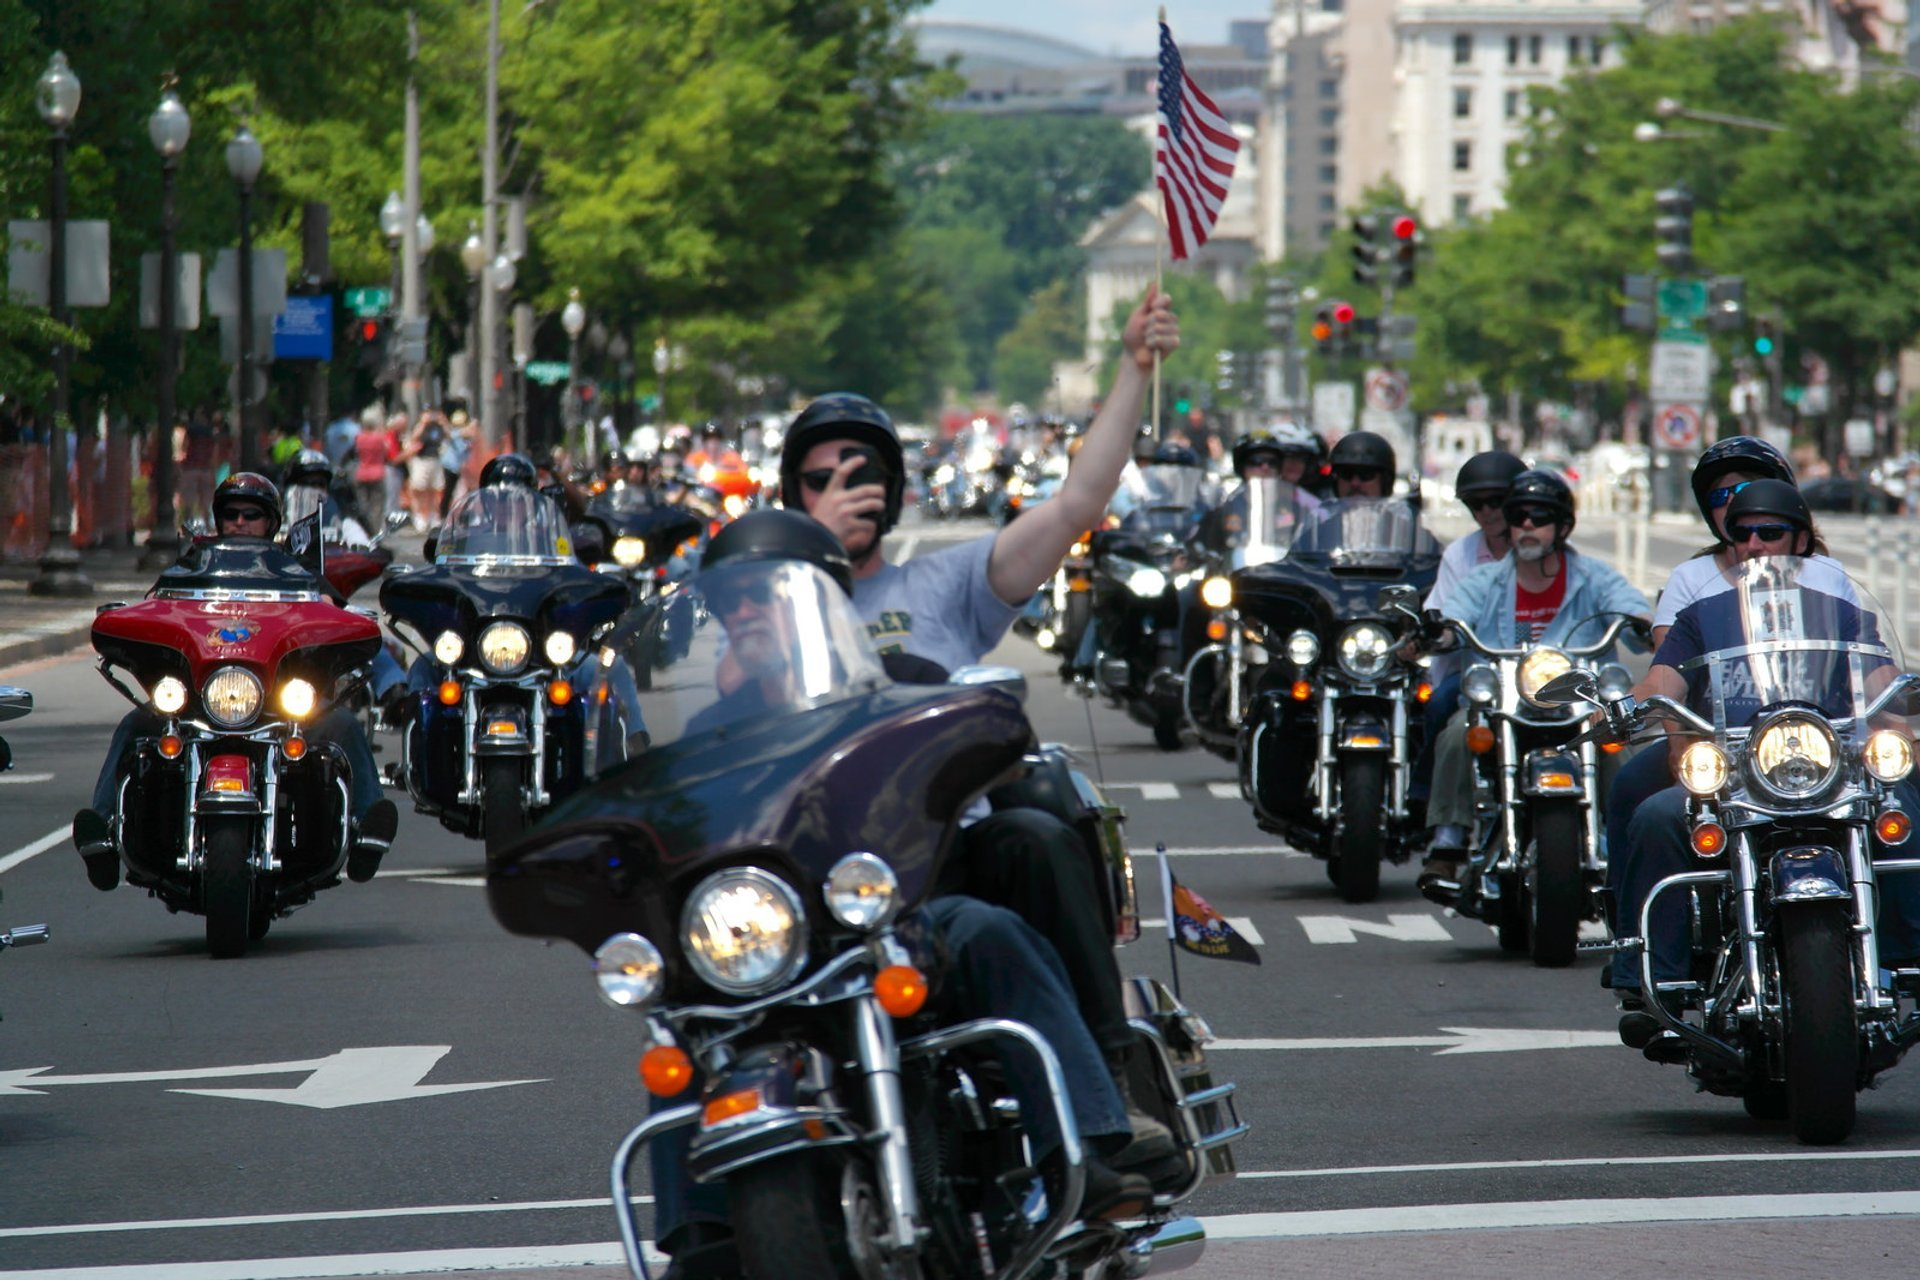 Rolling Thunder Run in Washington, D.C. 2020 - Best Time